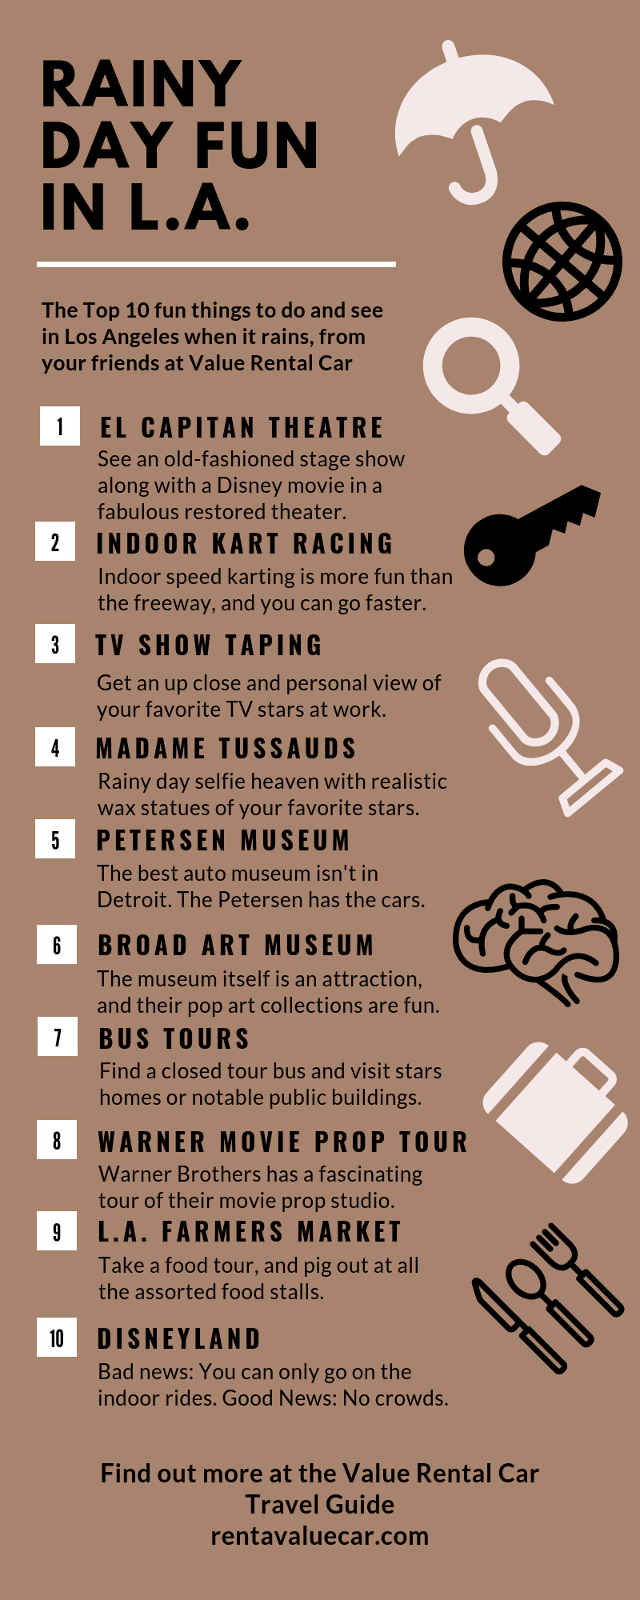 10 Fun Ways To Spend a Rainy Day in L.A. from rentavaluecar.com